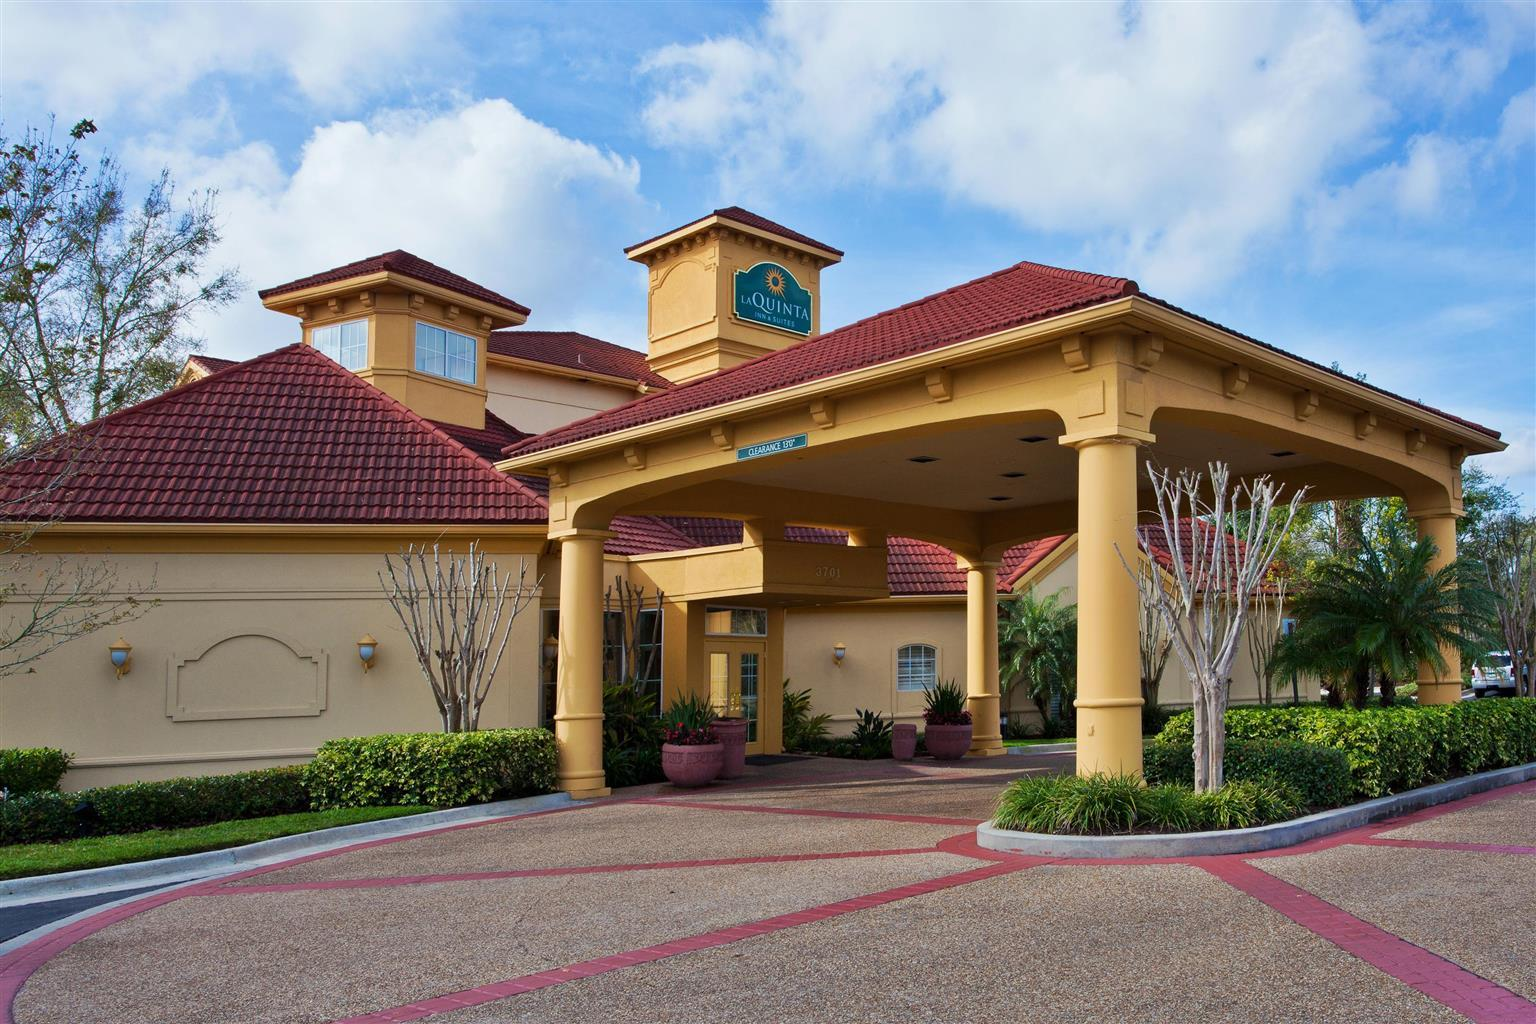 Clarion Hotel Conference Center Tampa Florida Reviews and